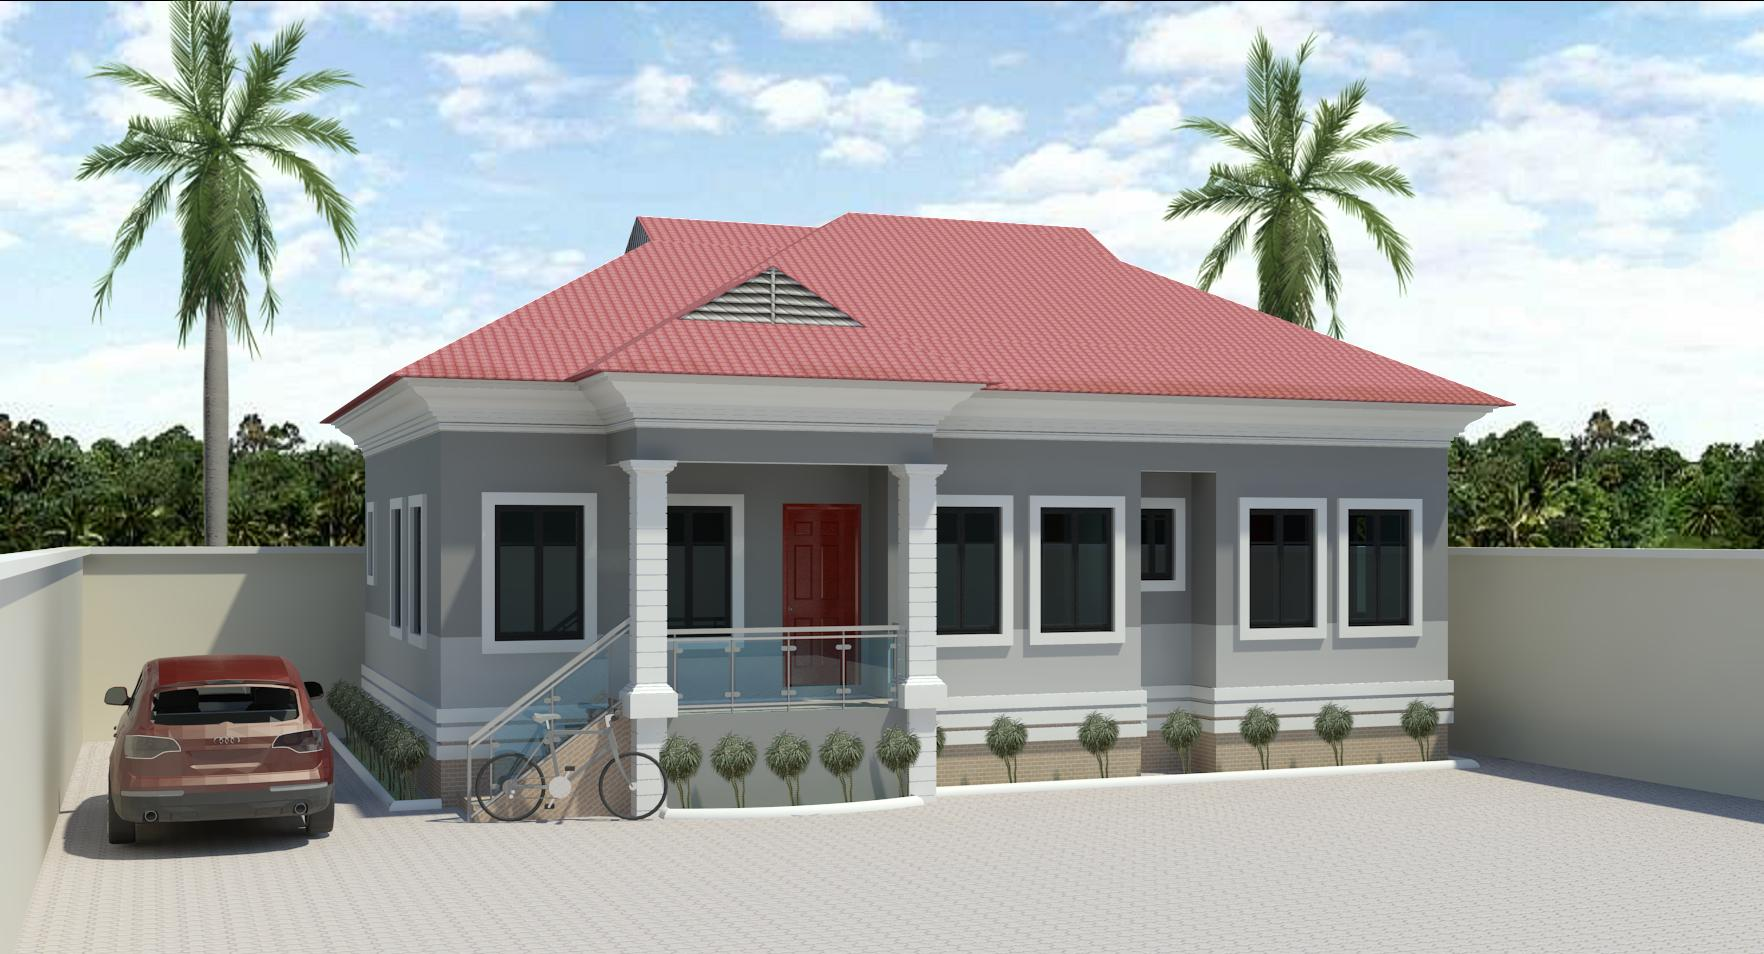 3bedroom bungalow designs in nigeria joy studio design gallery best design - Architecture plans of bedroom flat ...